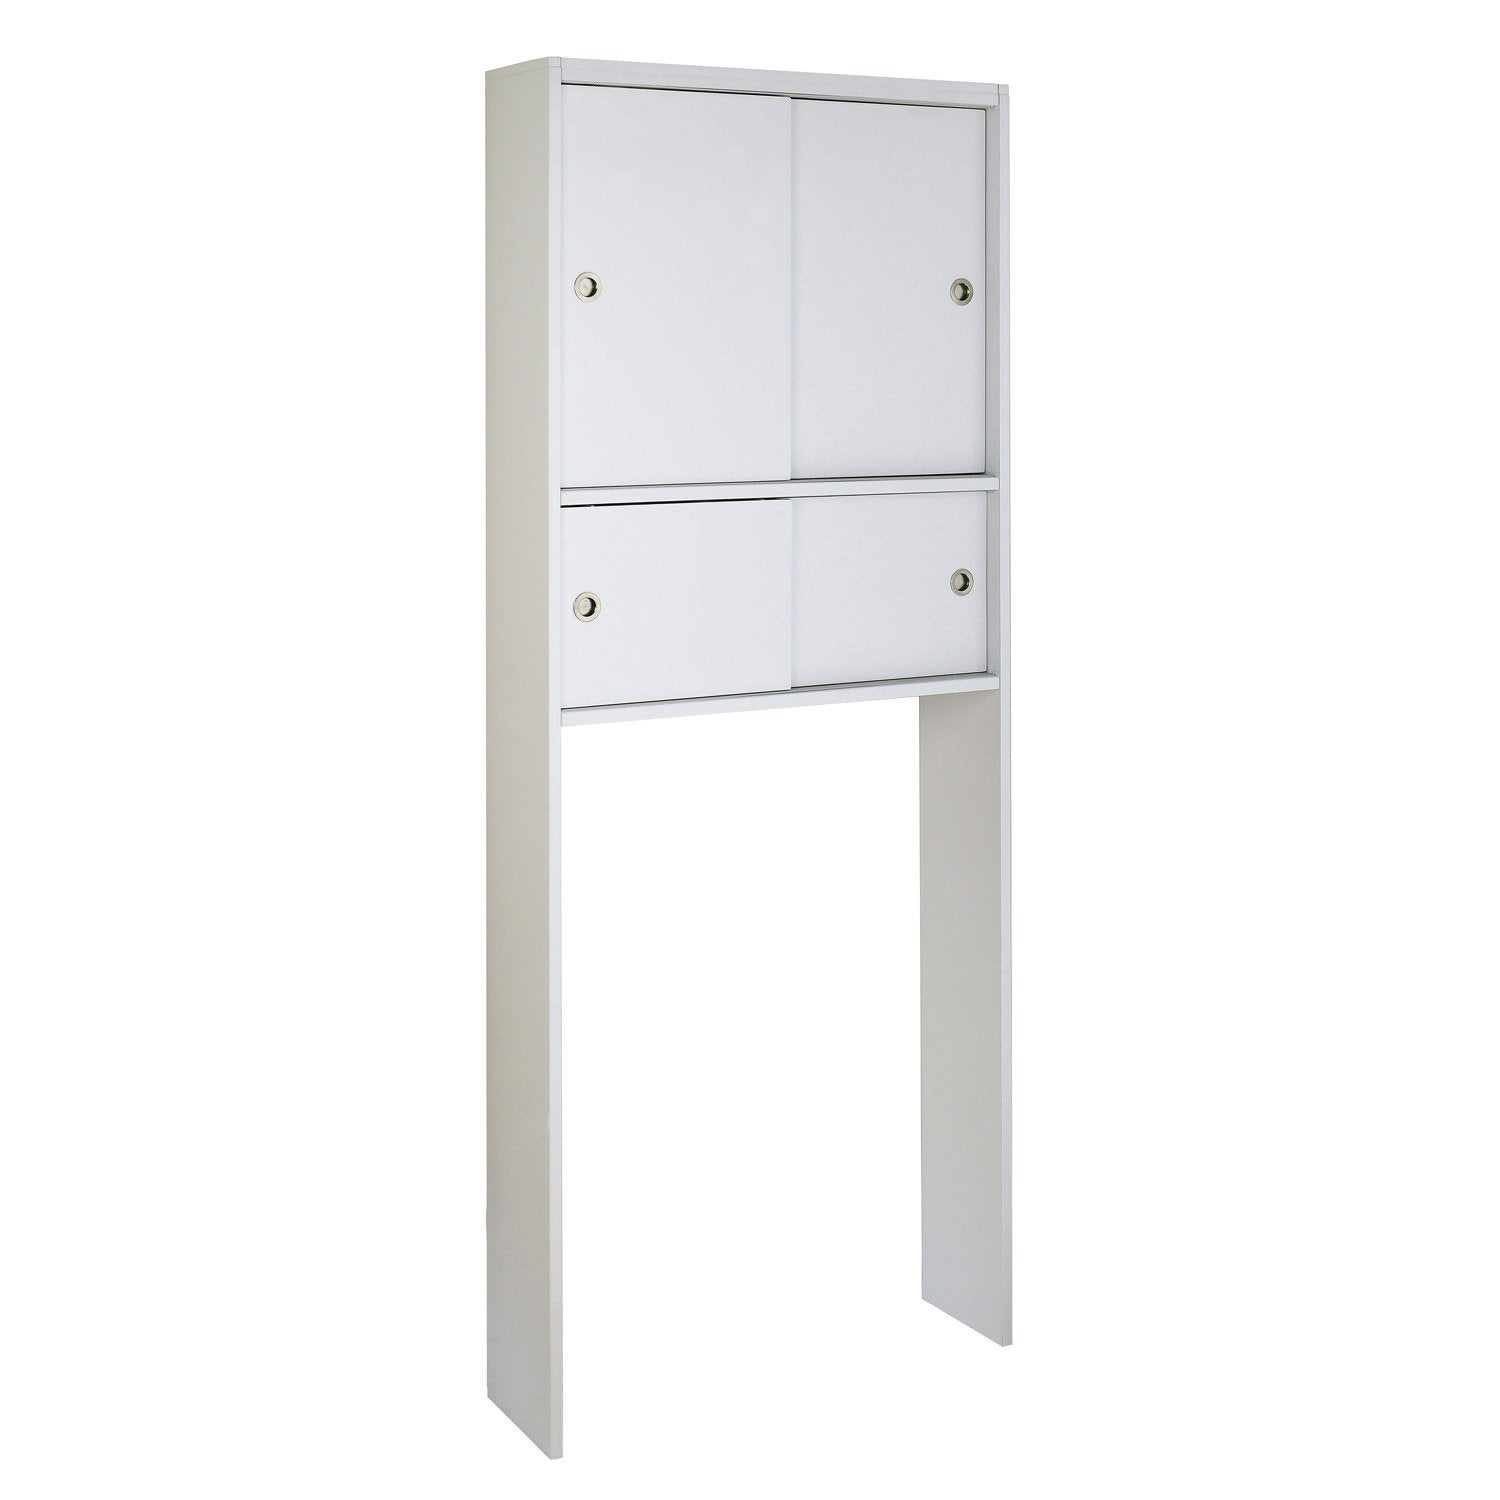 Meuble pour wc poser x x cm blanc sensea remix leroy merlin for Meuble wc conforama